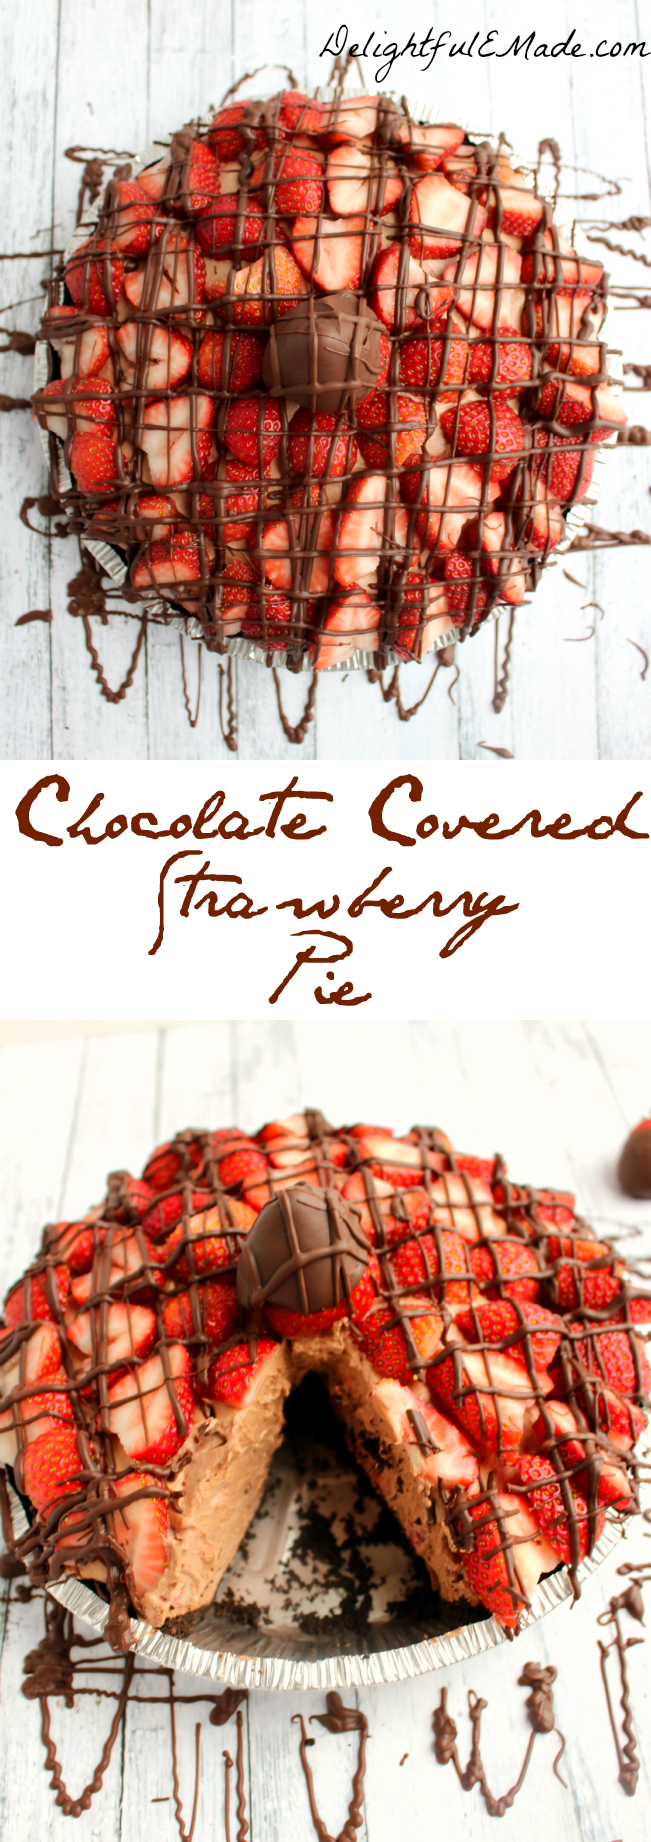 Covered Strawberry Pie has a delicious chocolate & strawberry ...